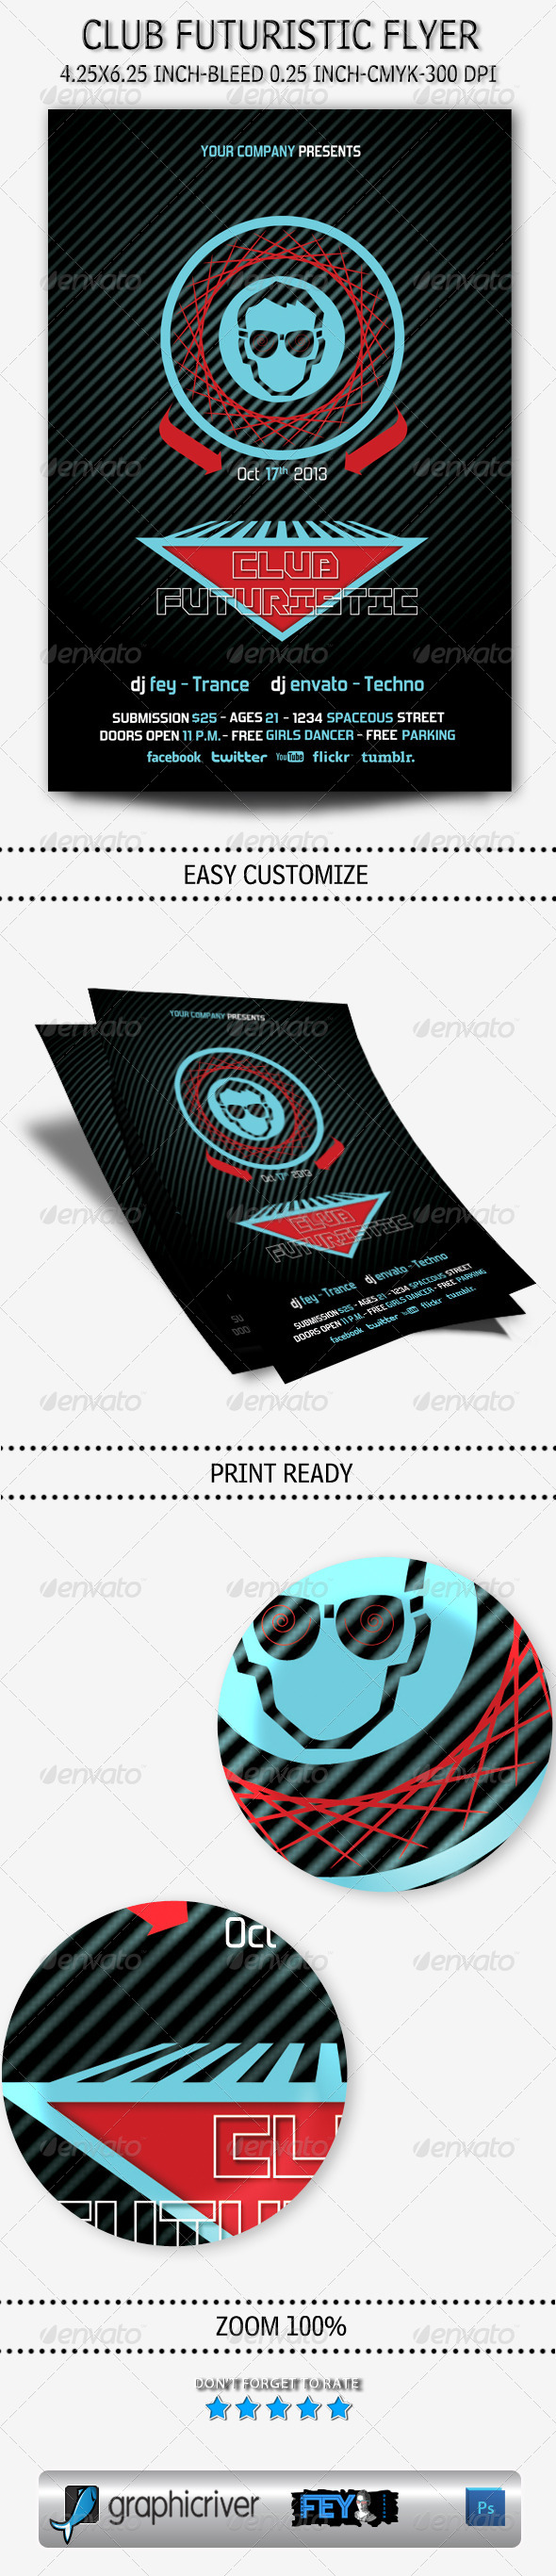 GraphicRiver Club Futuristic Flyer 5523265